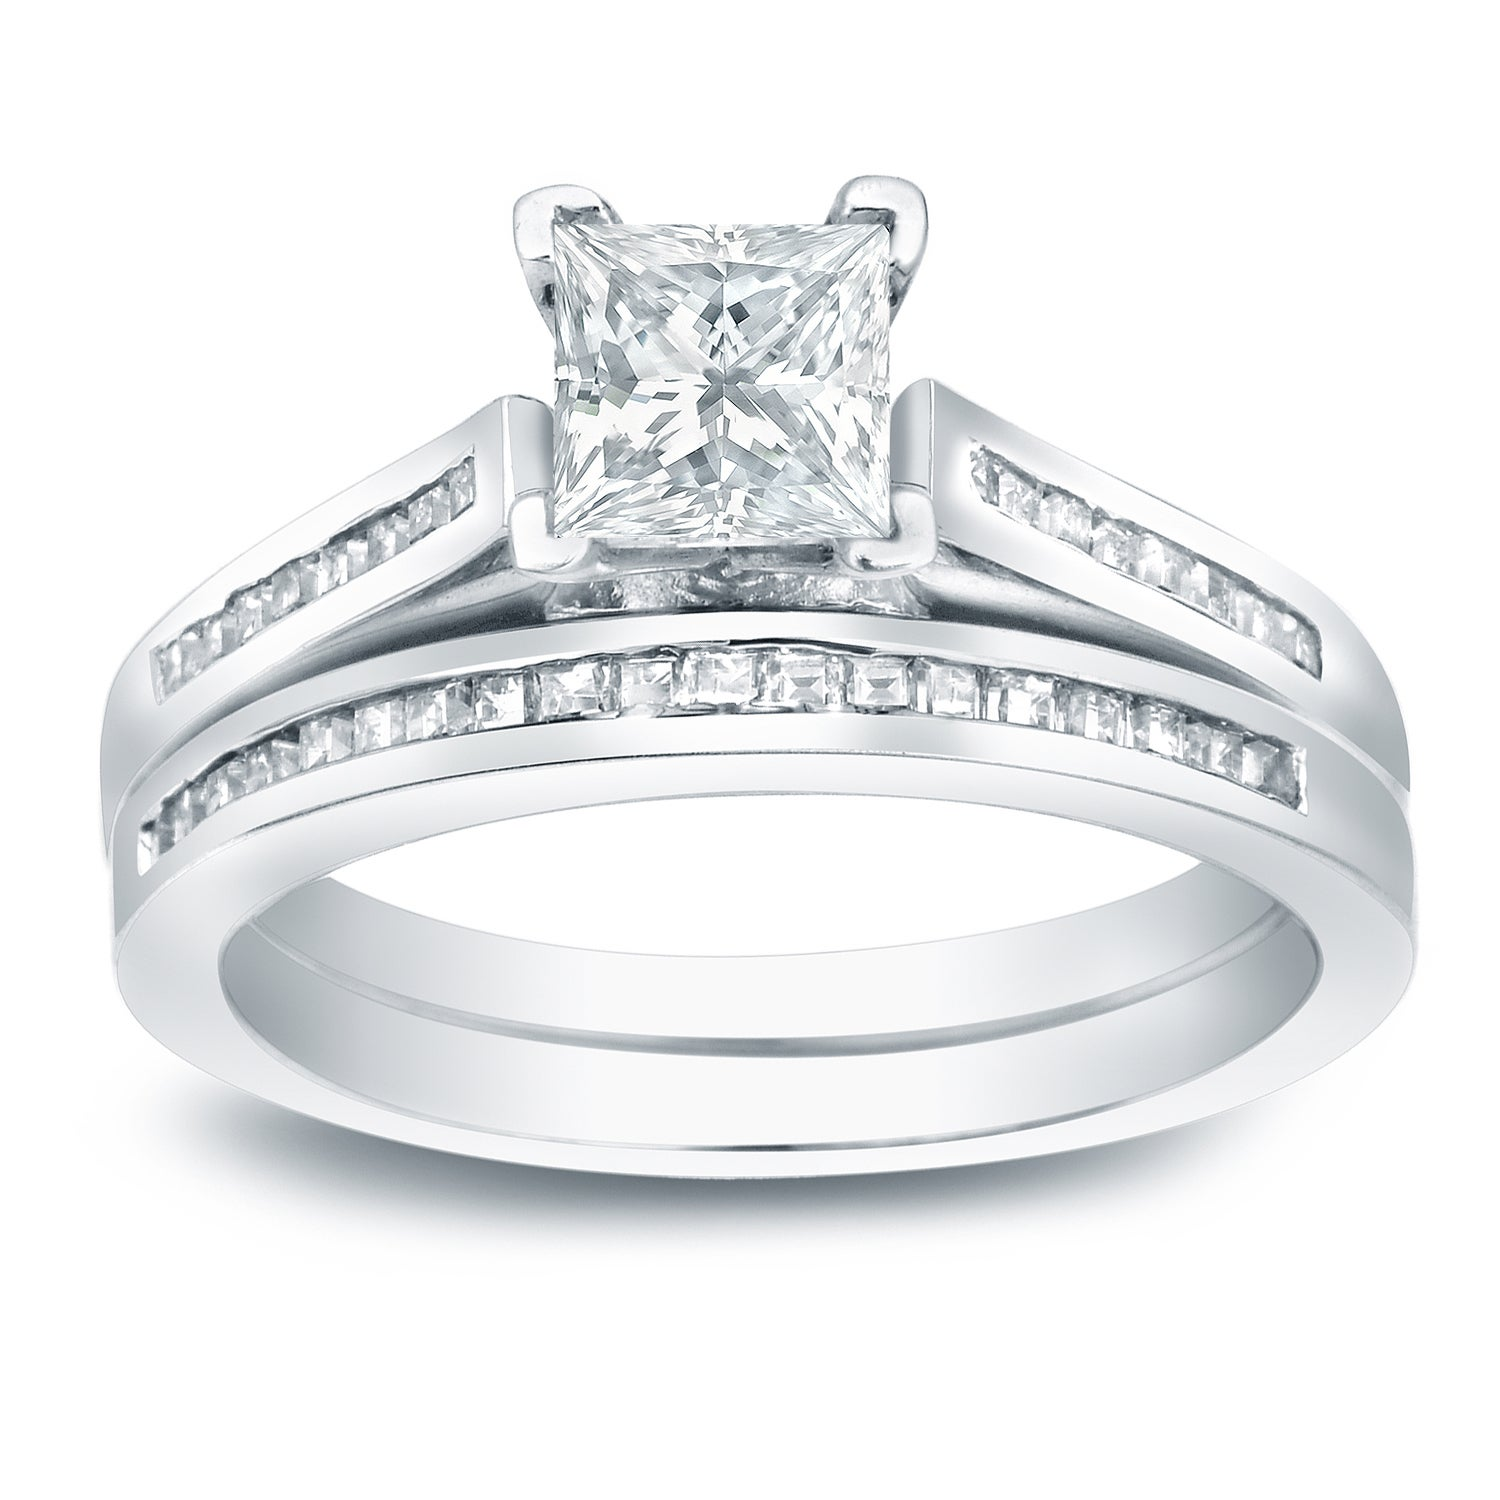 This is a graphic of Auriya Platinum 43 43/43ctw Princess-cut Diamond Engagement Ring Set